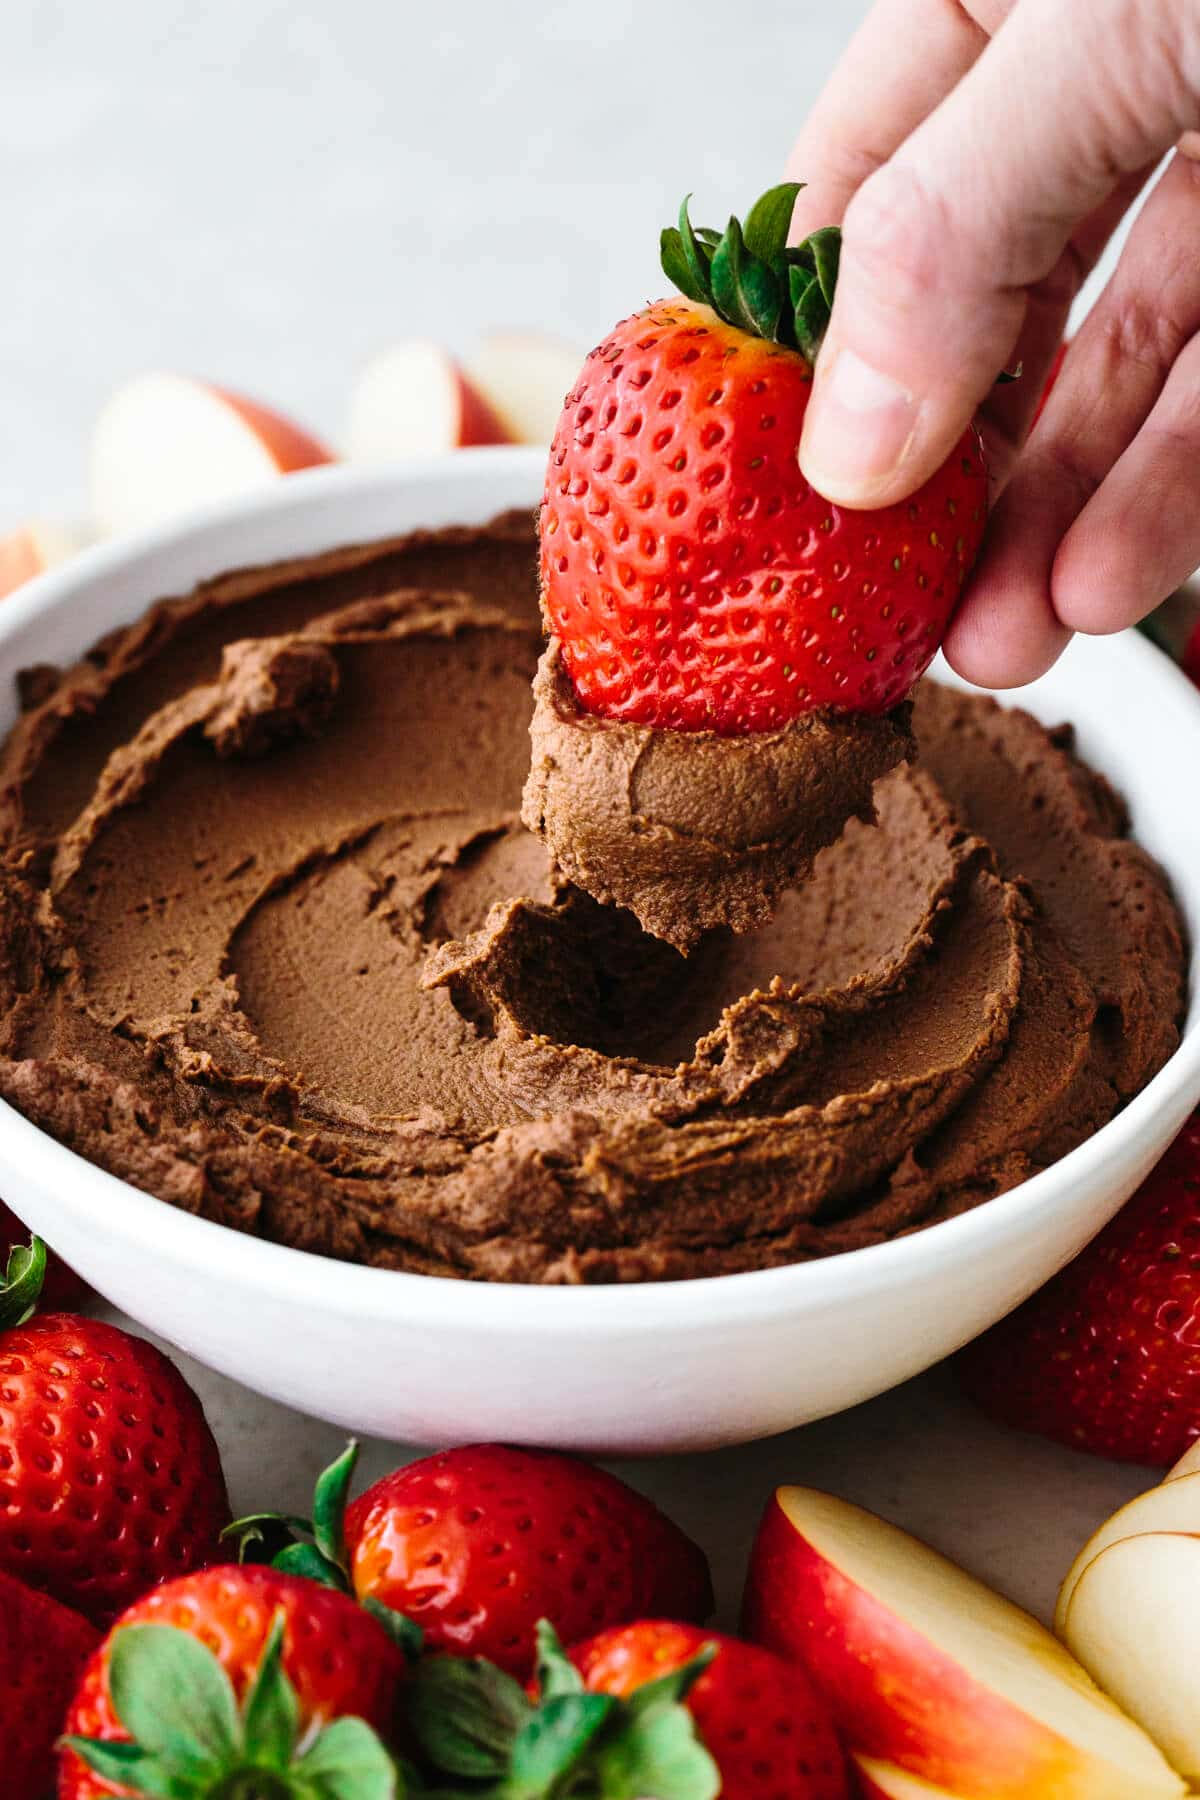 Dipping a strawberry into chocolate hummus.